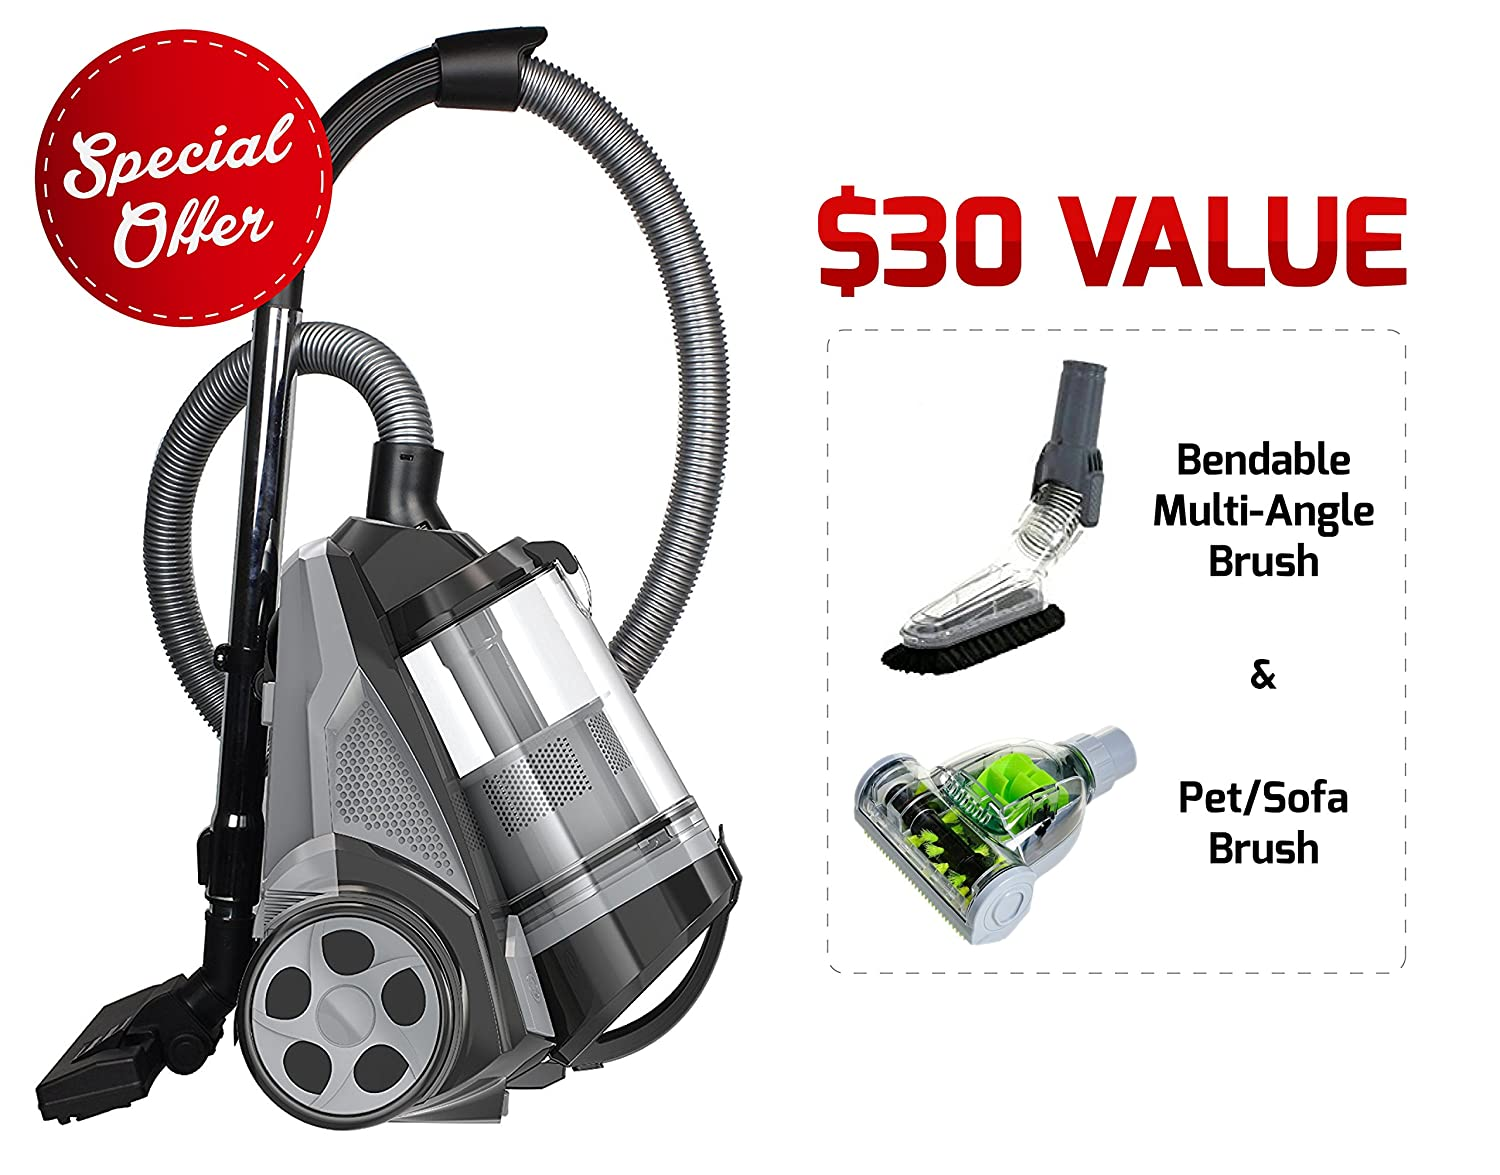 5. Ovente ST2620B Bagless Canister Cyclonic Vacuum